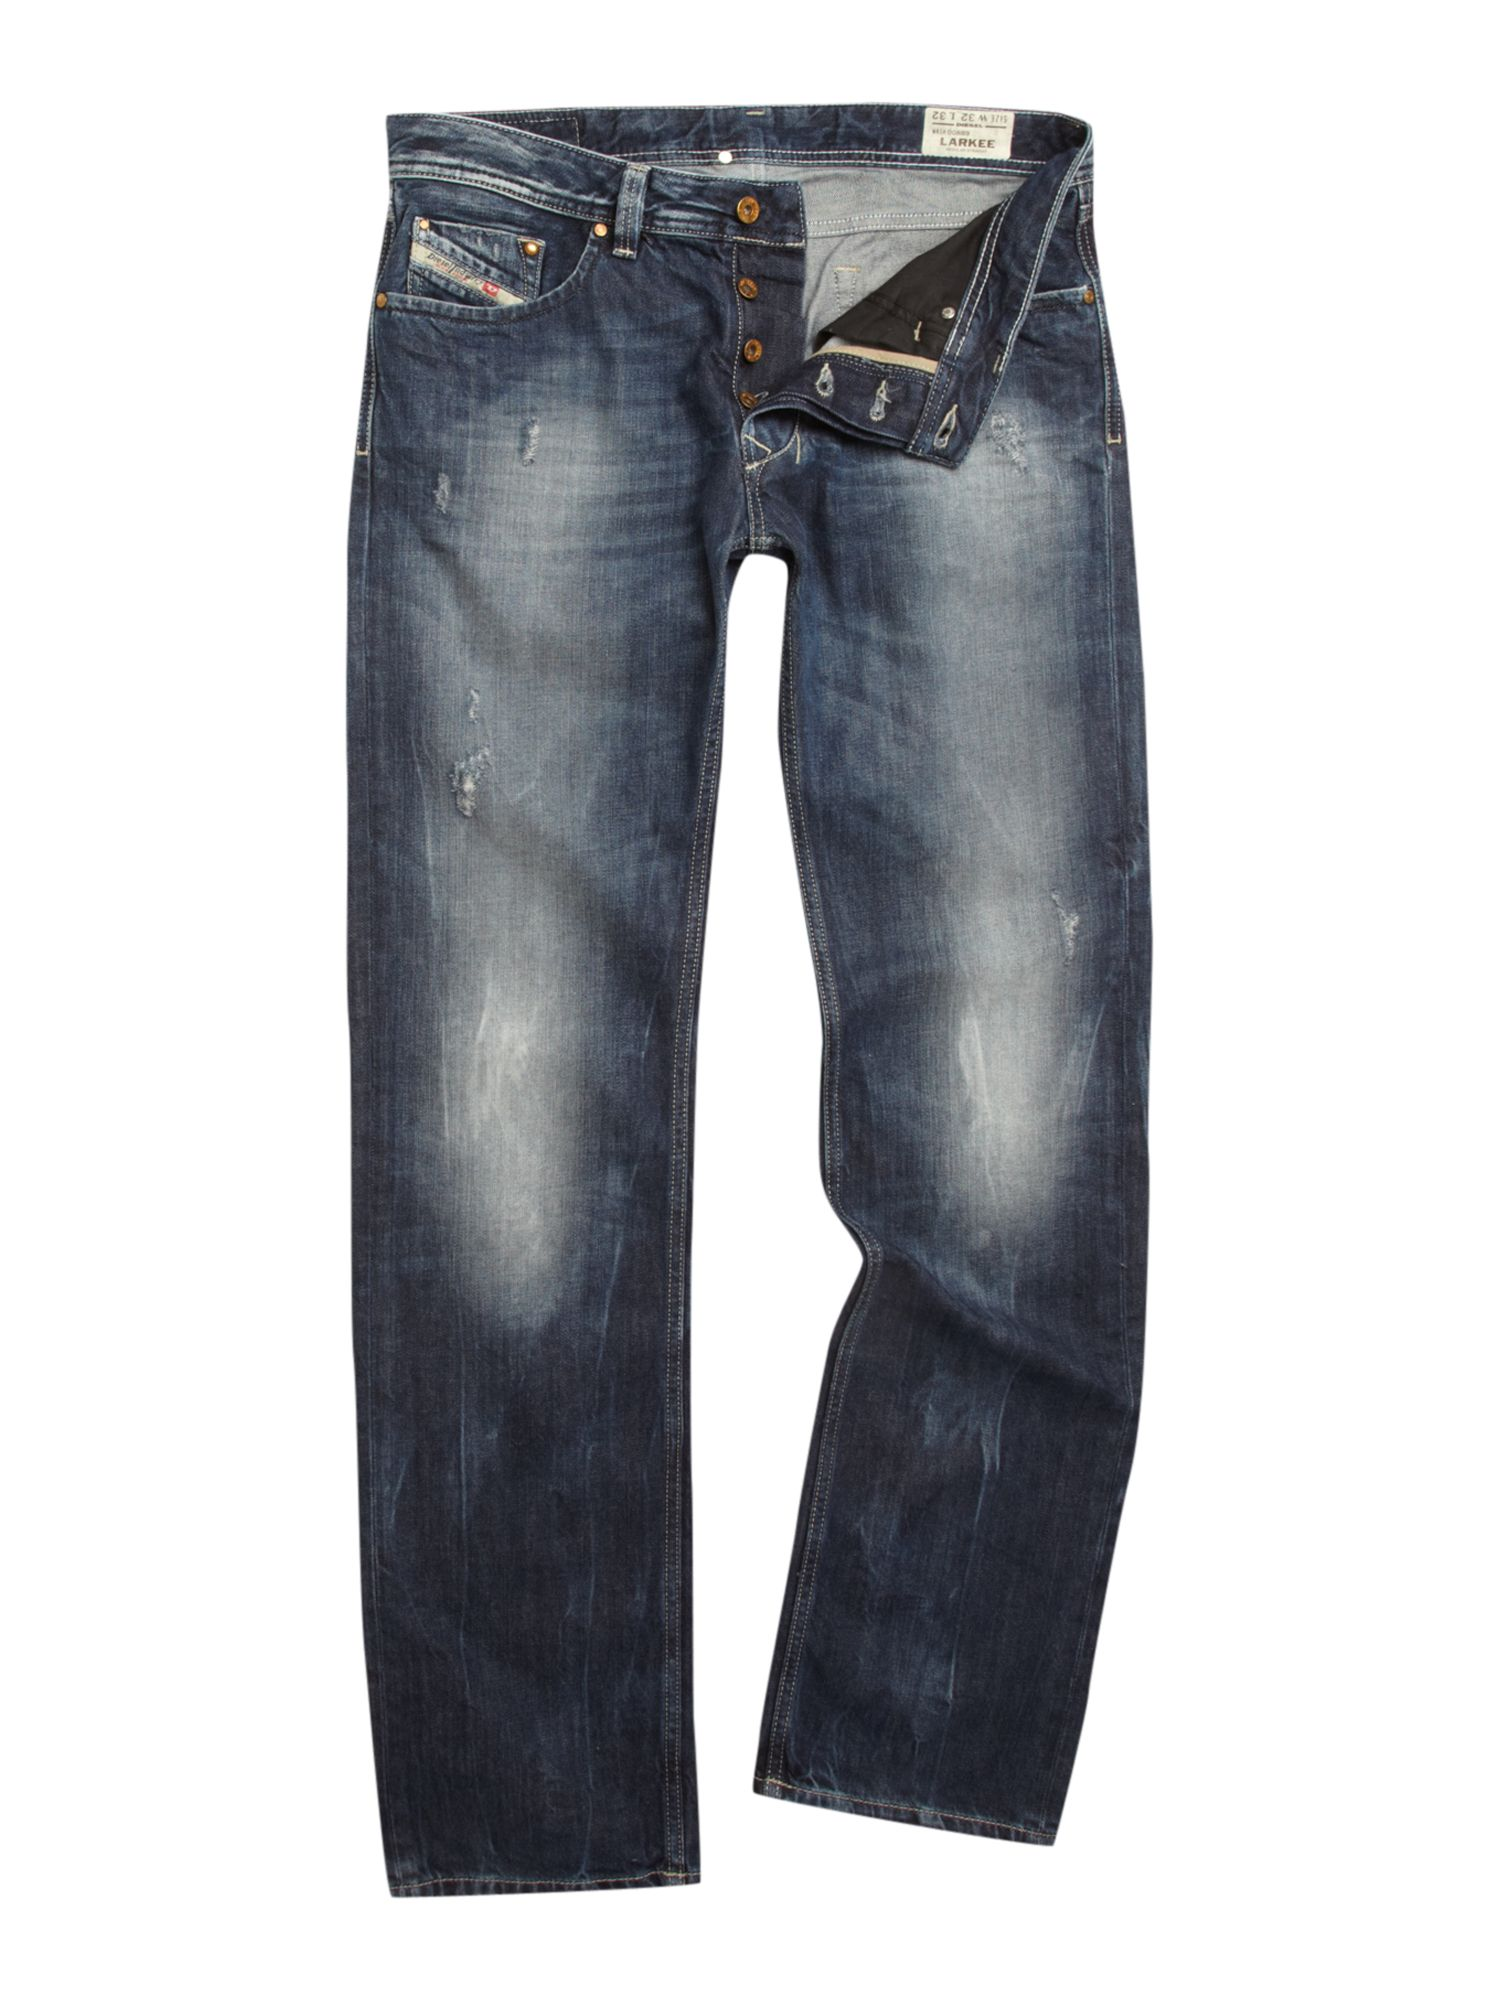 Larkee 8B9 straight fit jeans